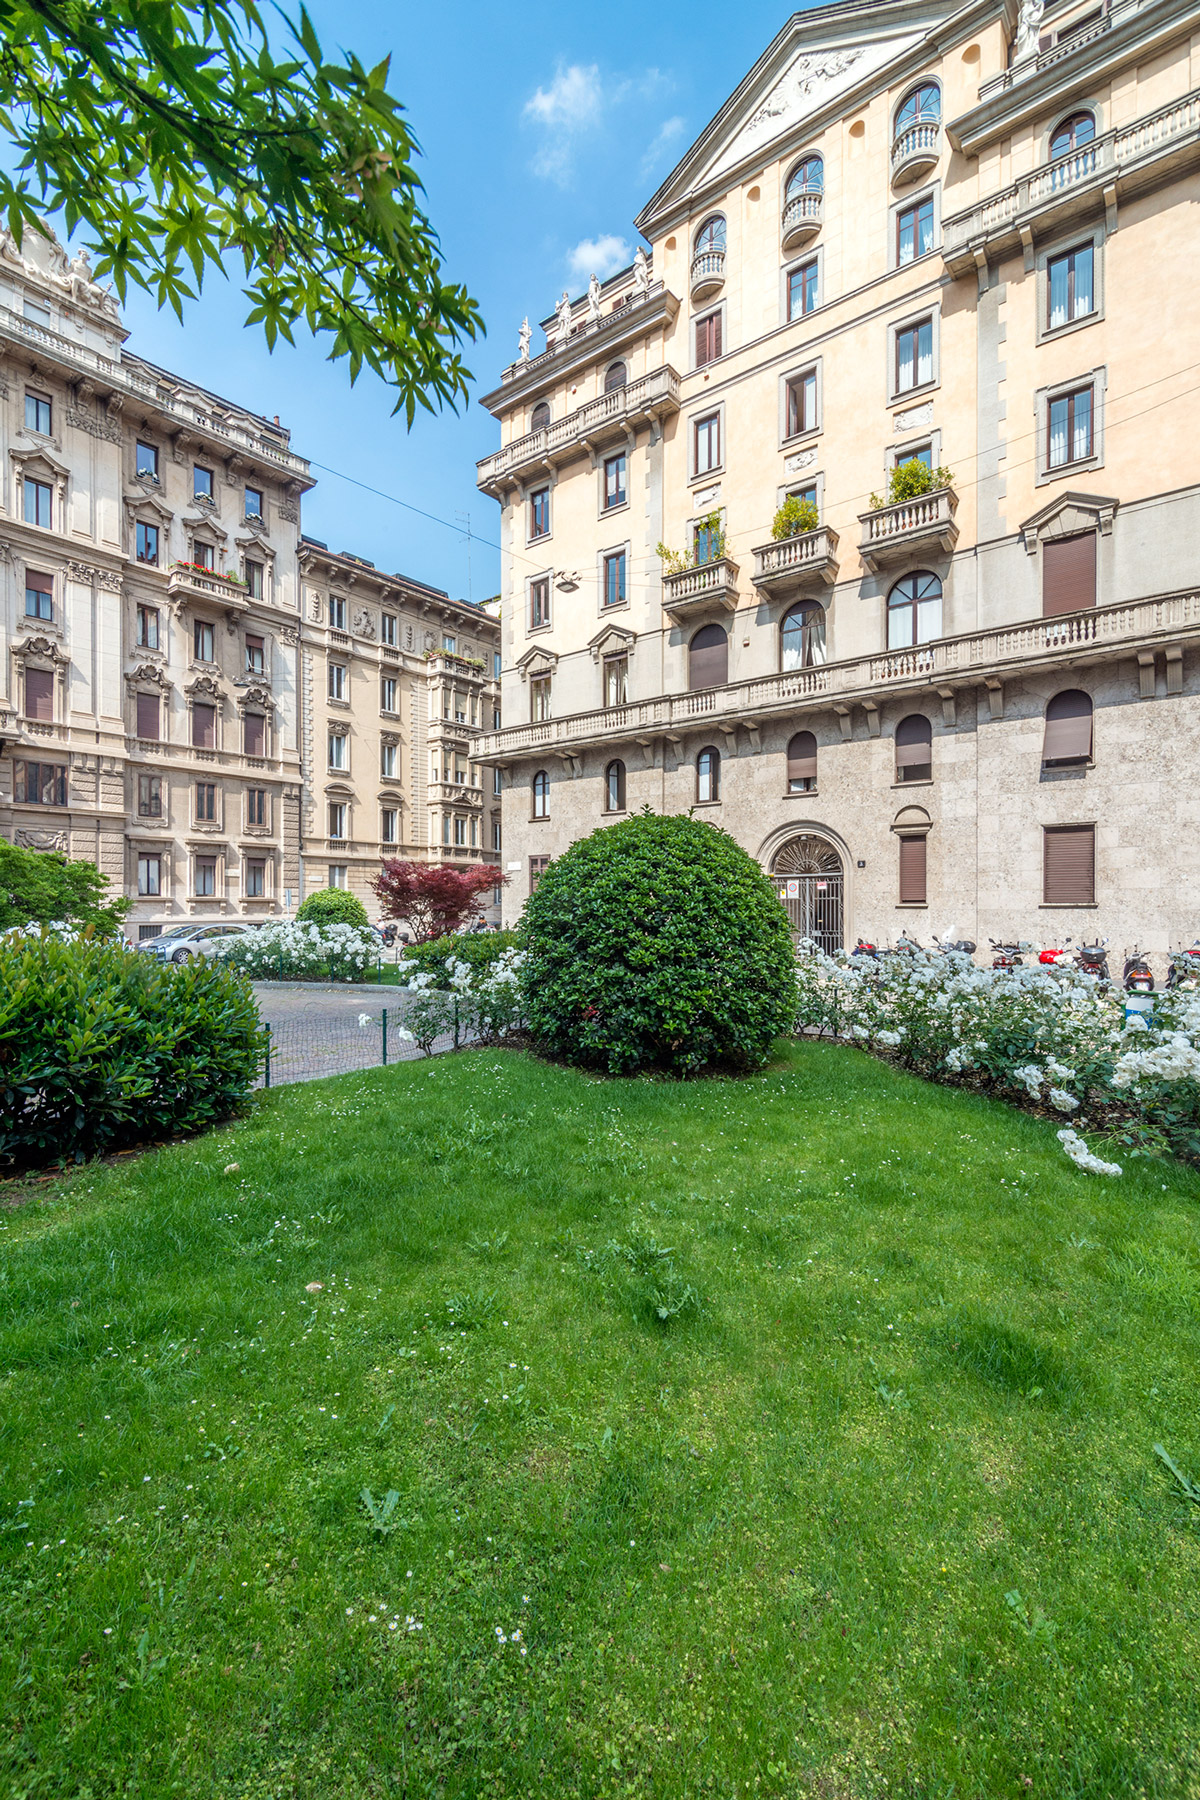 Additional photo for property listing at Appartamento panoramico in palazzo d'epoca di charme Piazza Duse Other Milan, Milano 20100 Italia